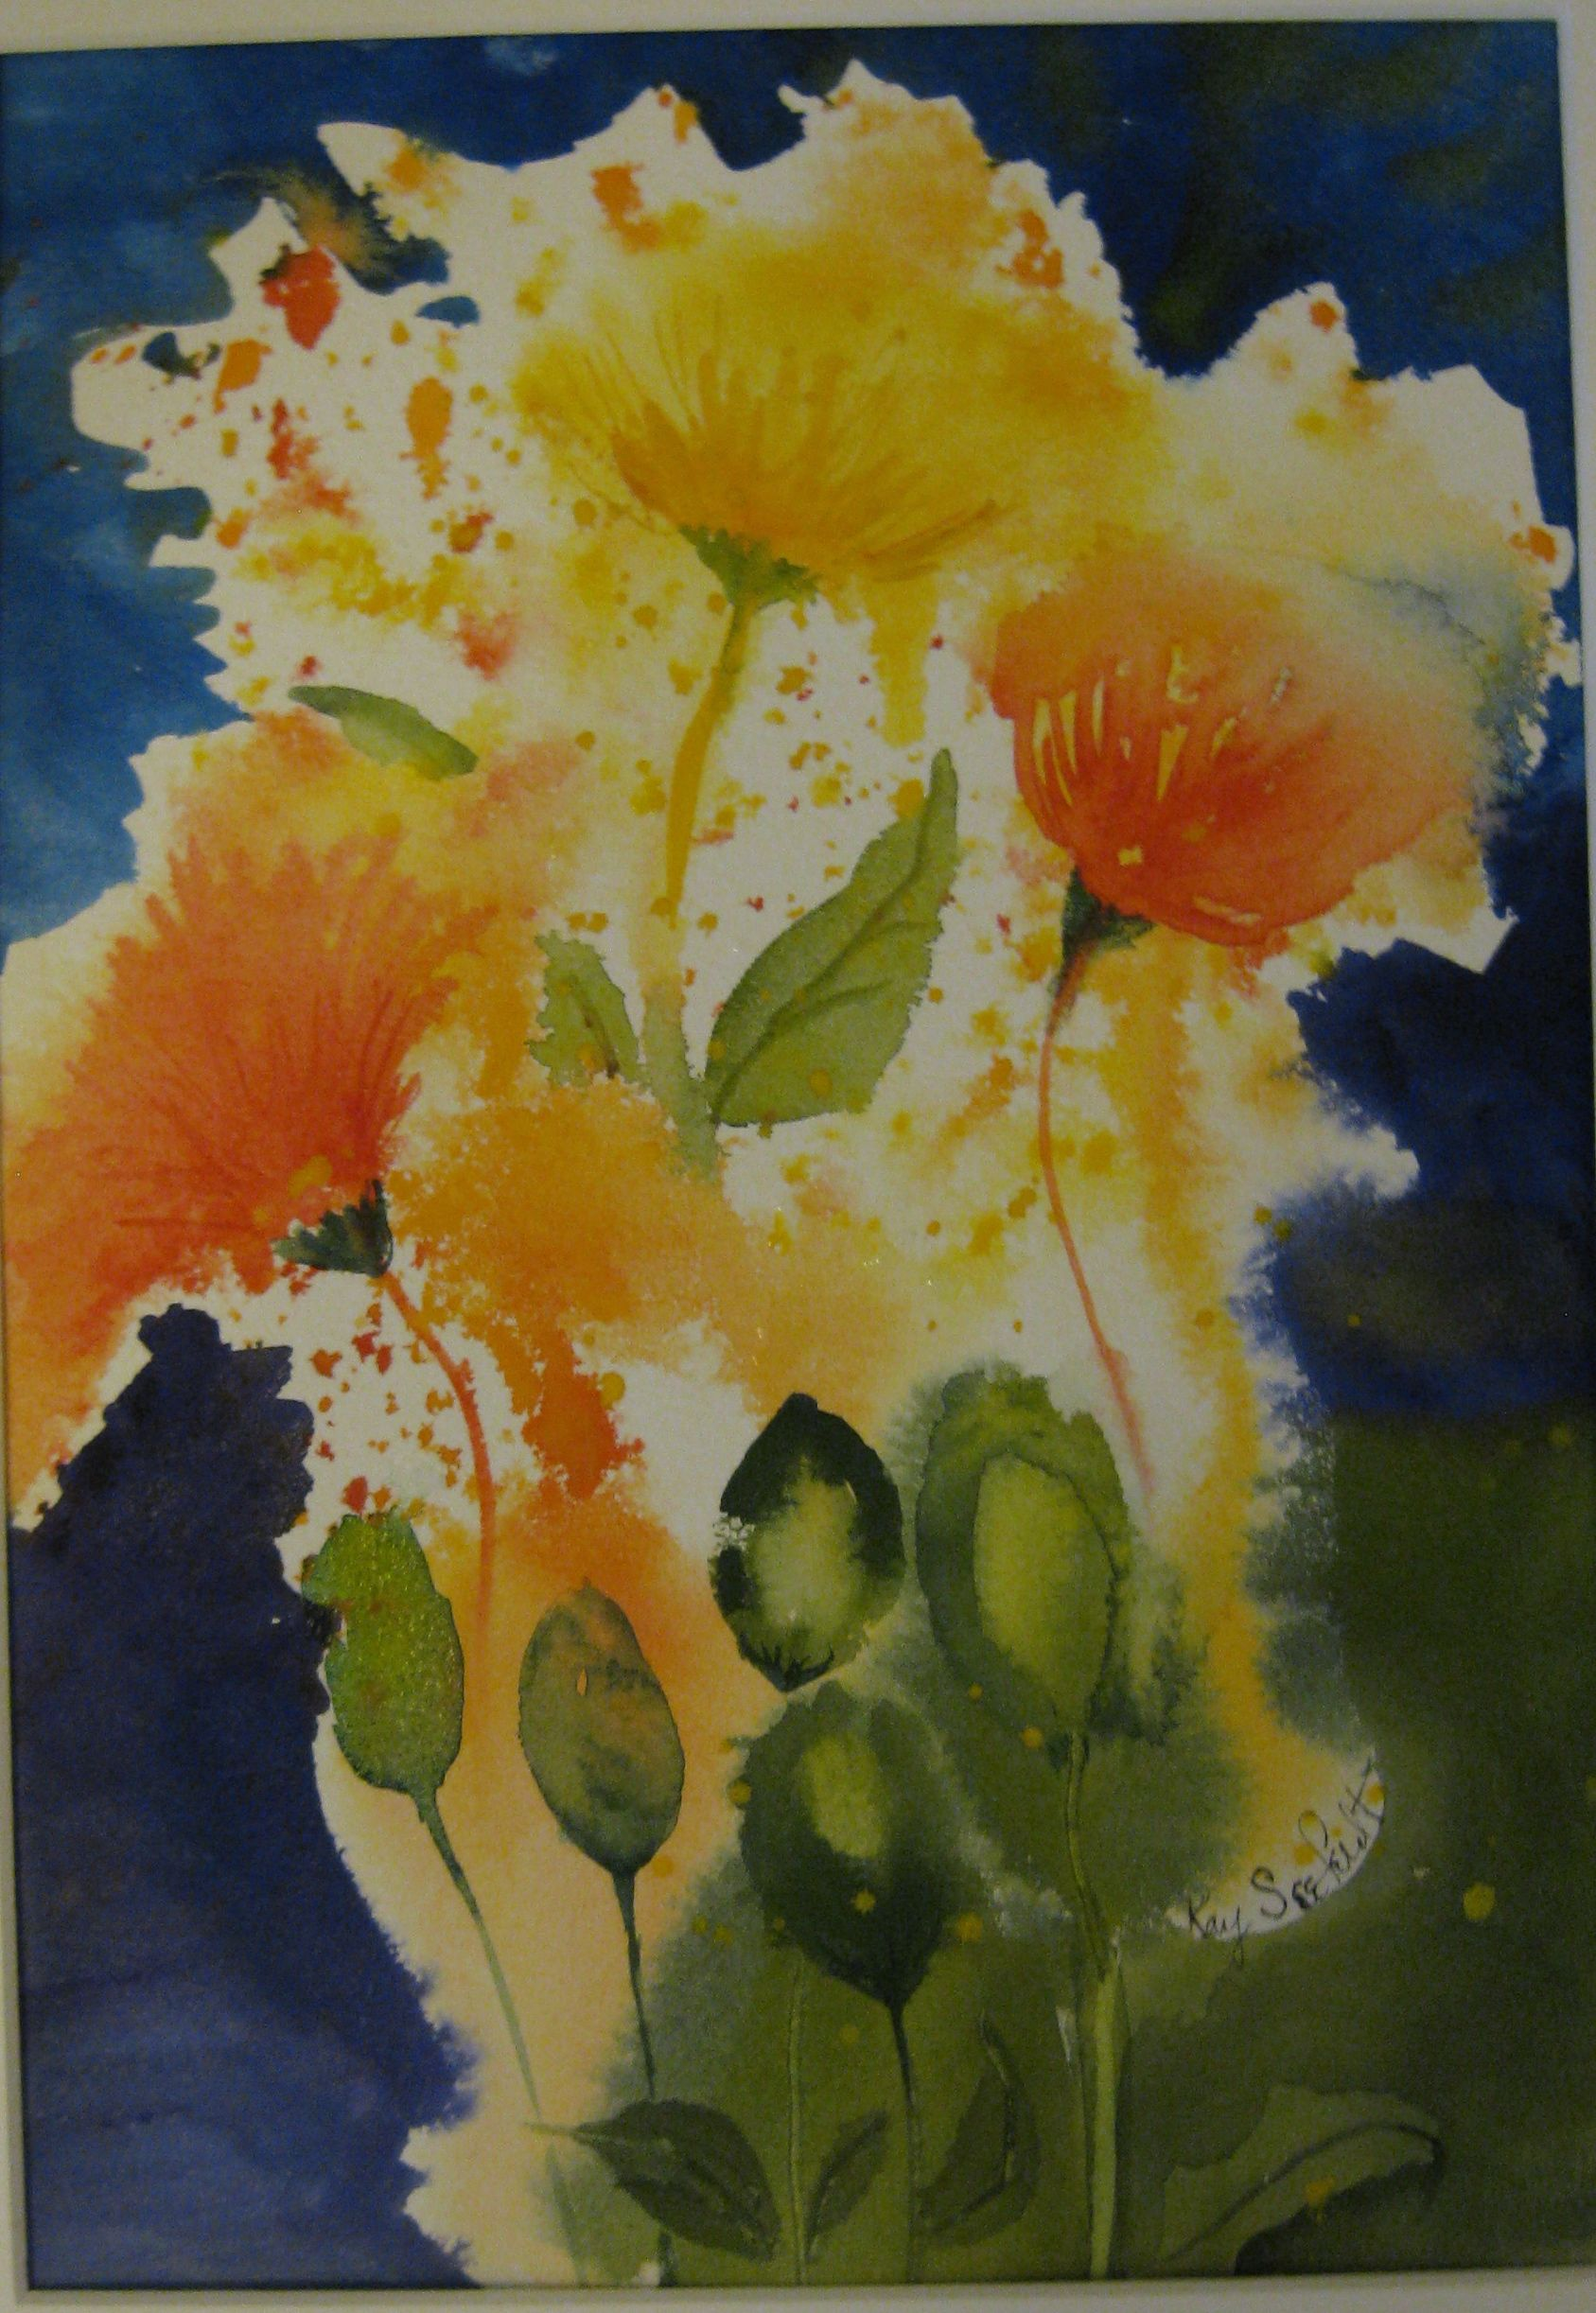 Experiment using water sprayed onto dry paper & dropping in color. (May 7/2012)